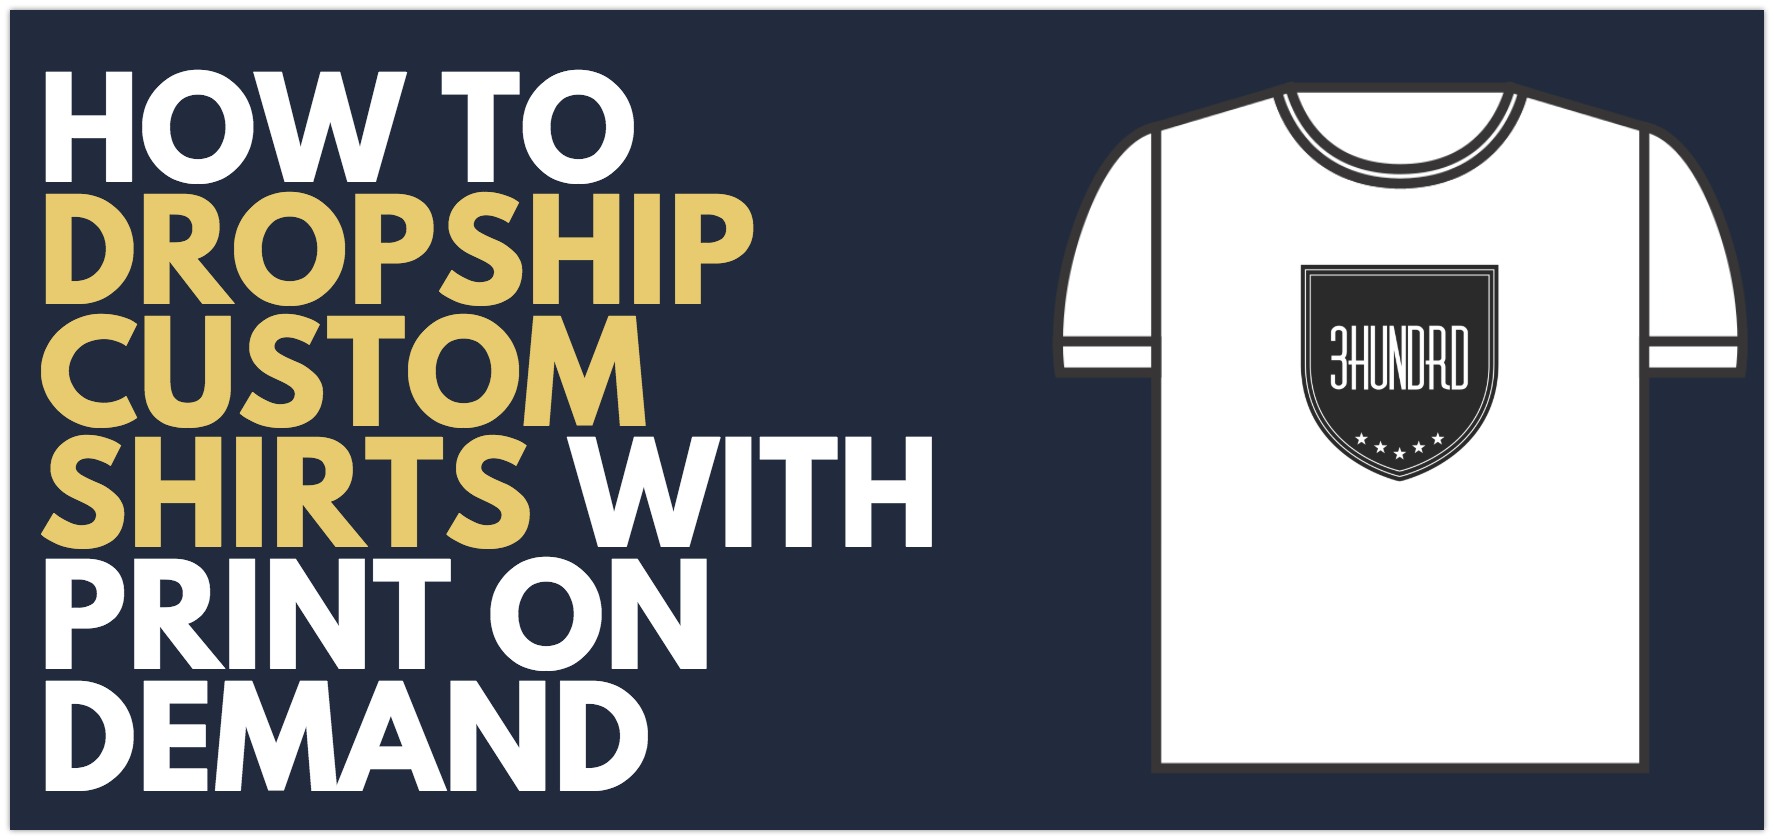 How To Dropship Custom Shirts With Print On Demand